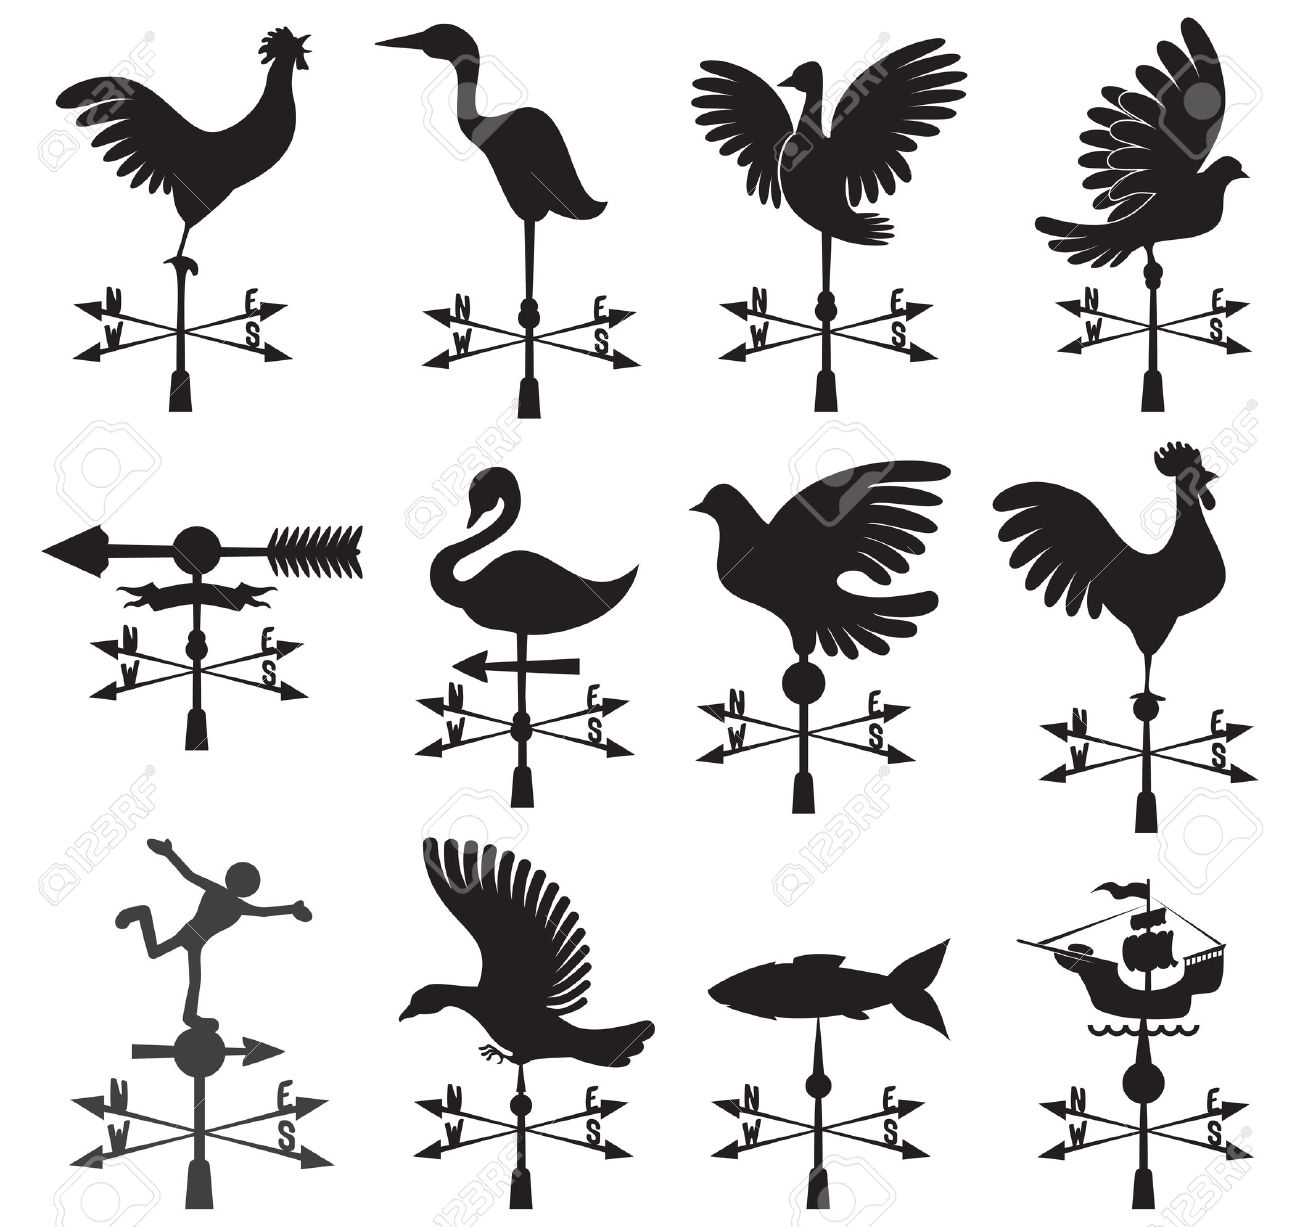 Drawn rooster rooster weathervane Sketch weathervanes decoration Roof Using